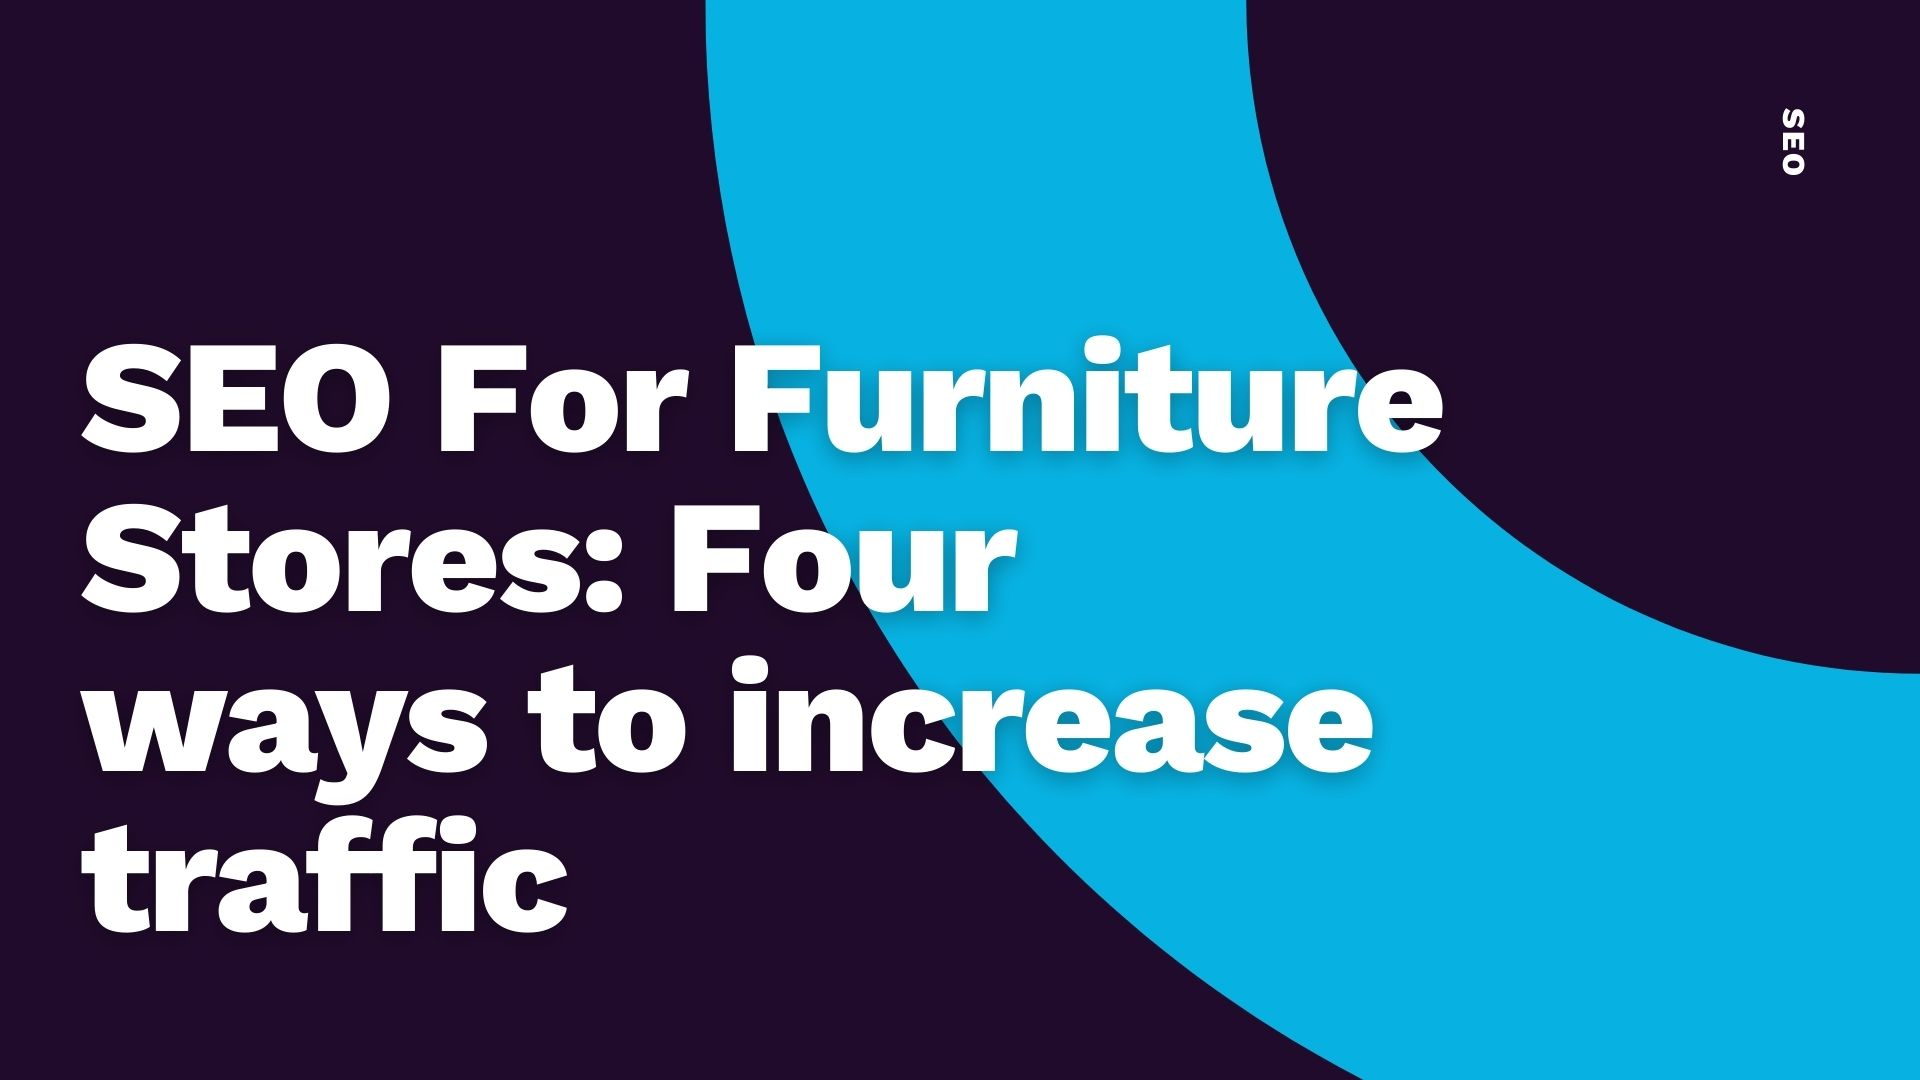 Common Ground - SEO for furniture stores - 4 ways to increase traffic